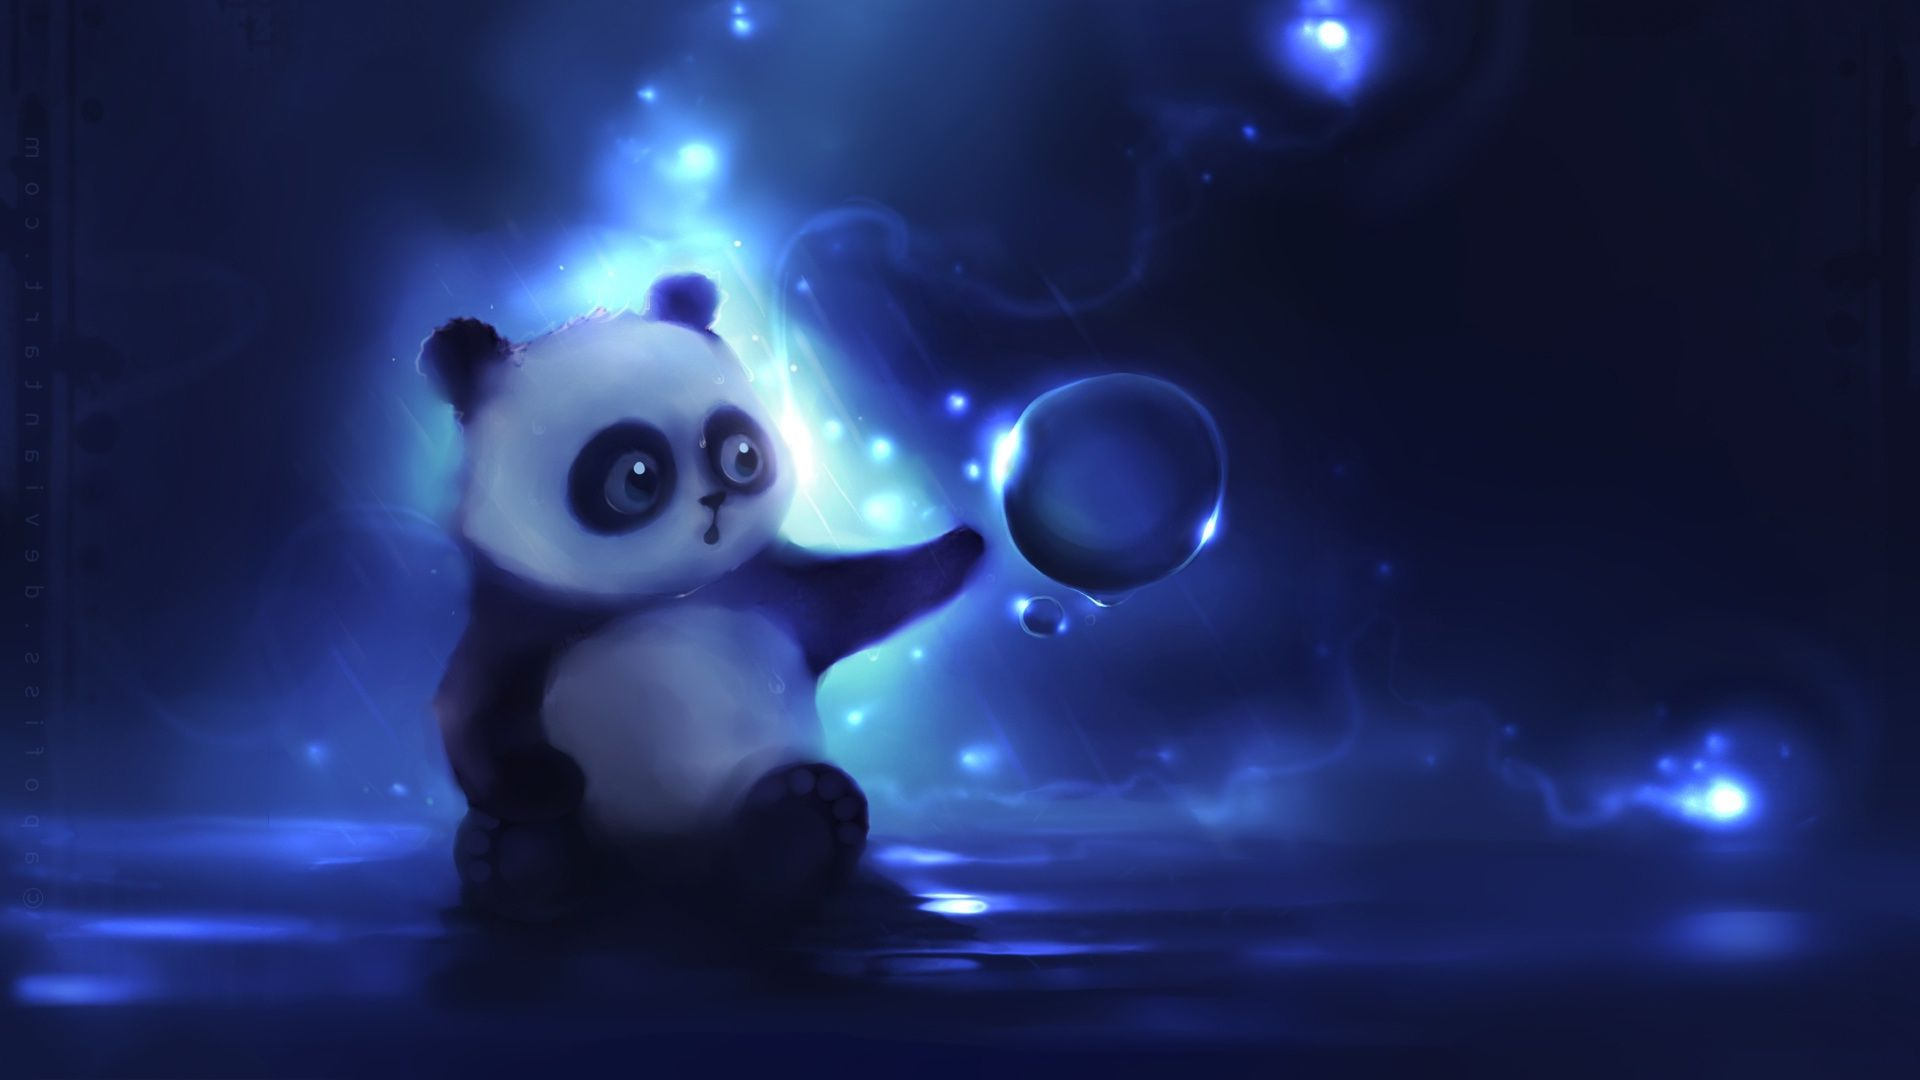 Download Wallpaper Macbook Panda - de02a7bef80933ba19763db375a2c502  Trends_597948.jpg